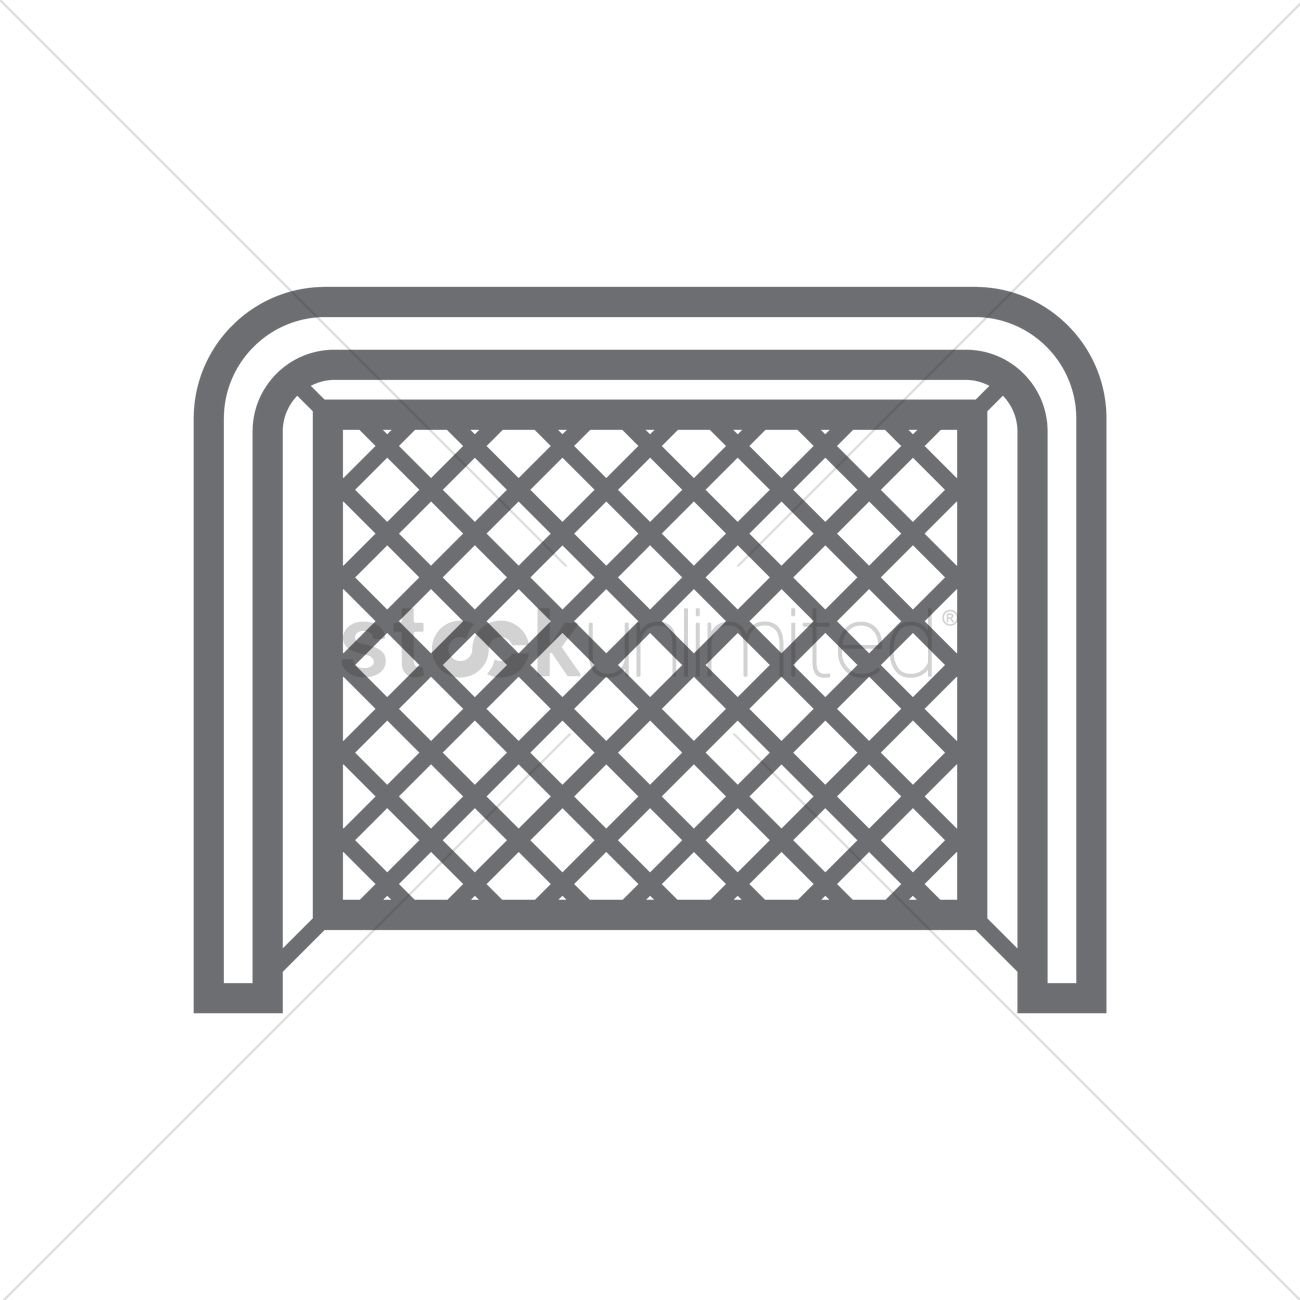 Hockey Goal Clipart Cliparts Galleries